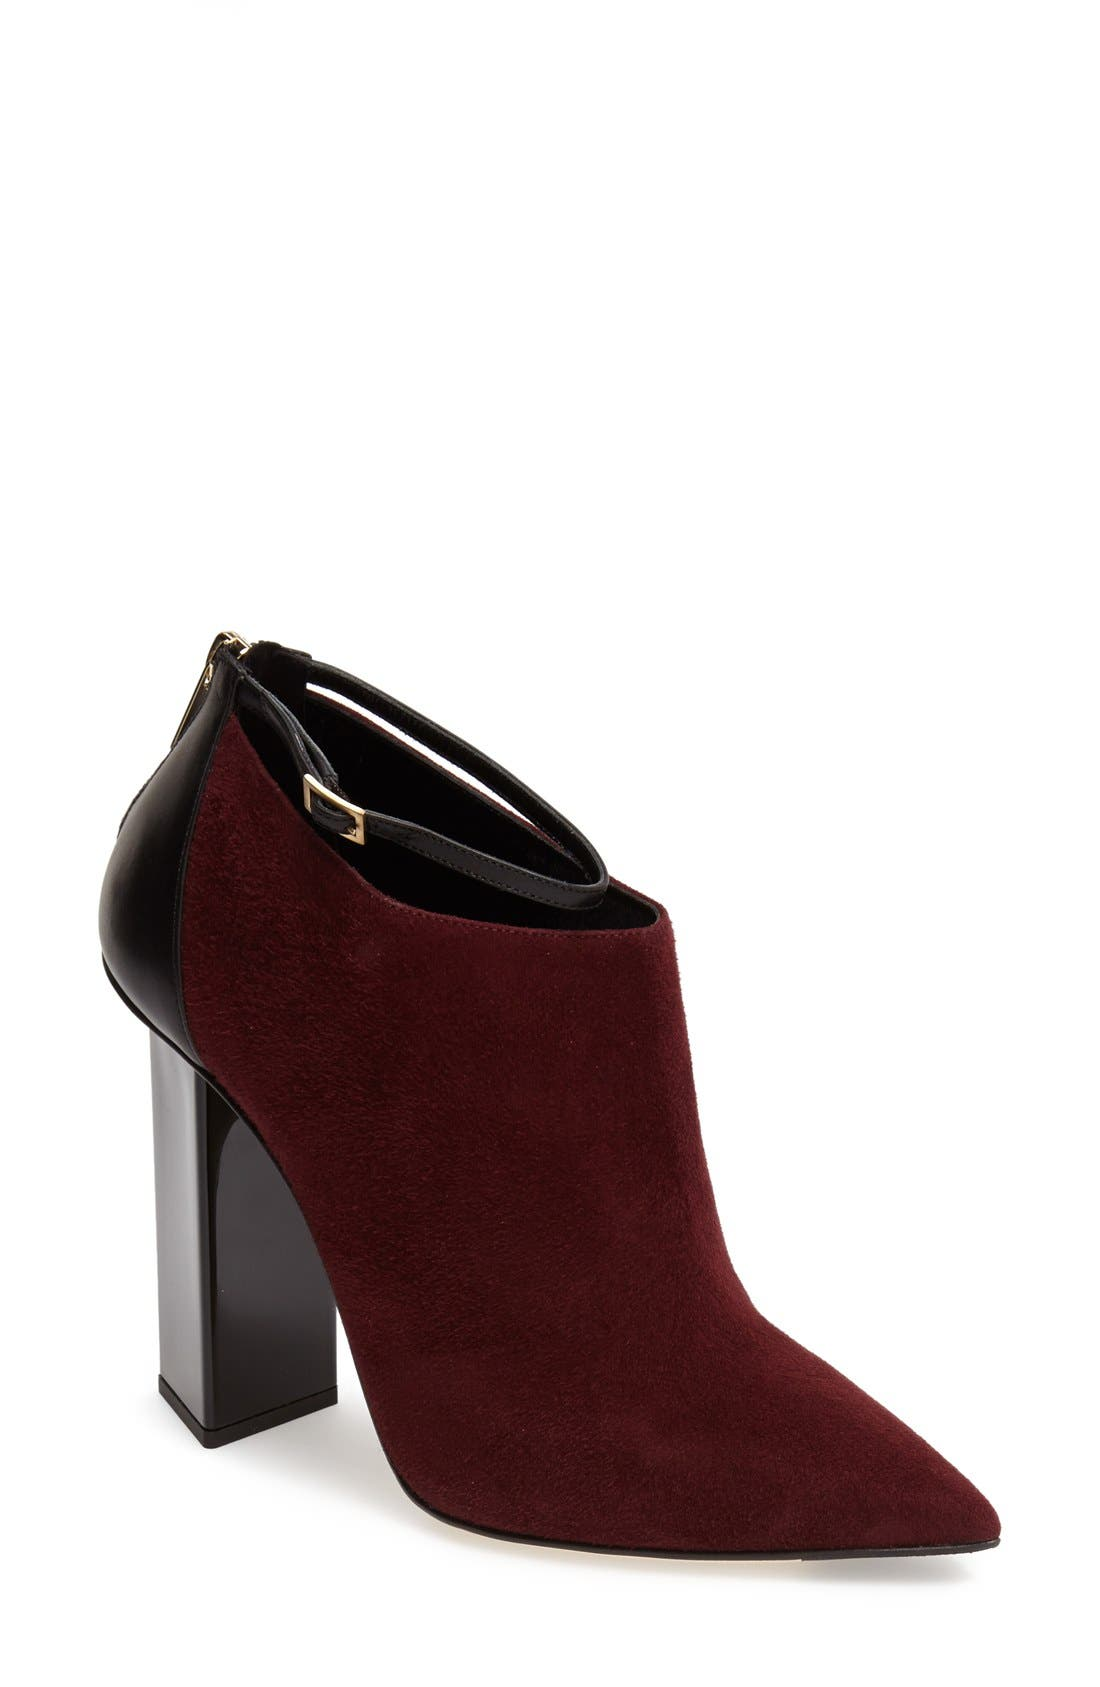 'Vanish' Leather Bootie,                             Main thumbnail 1, color,                             Mirto